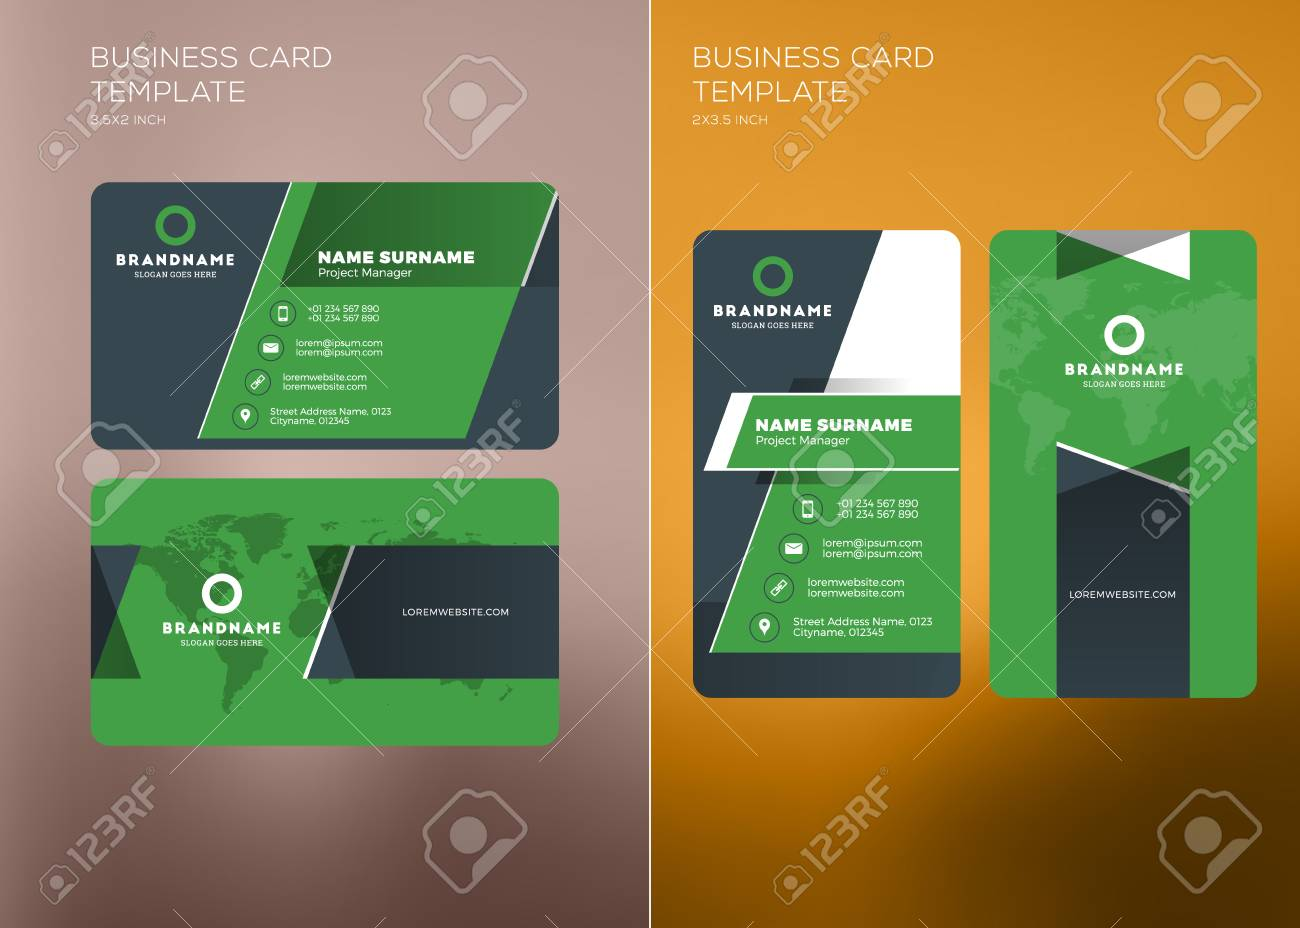 Corporate business card print template personal visiting card corporate business card print template personal visiting card with company logo vertical and horizontal fbccfo